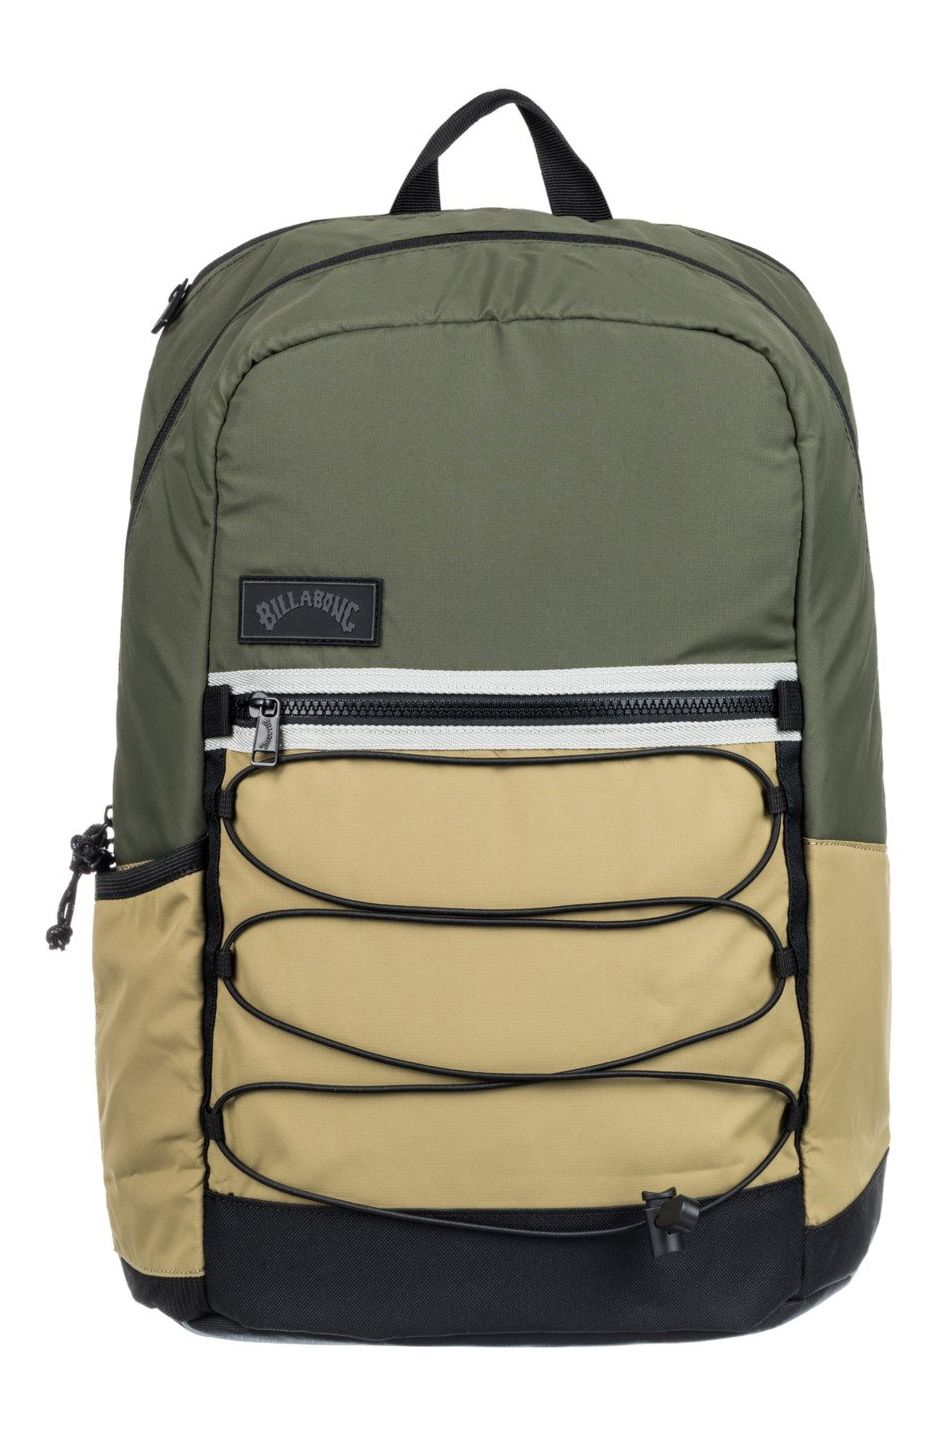 Mochila Billabong AXIS DAY PACK ADVENTURE DIVISION Dark Olive